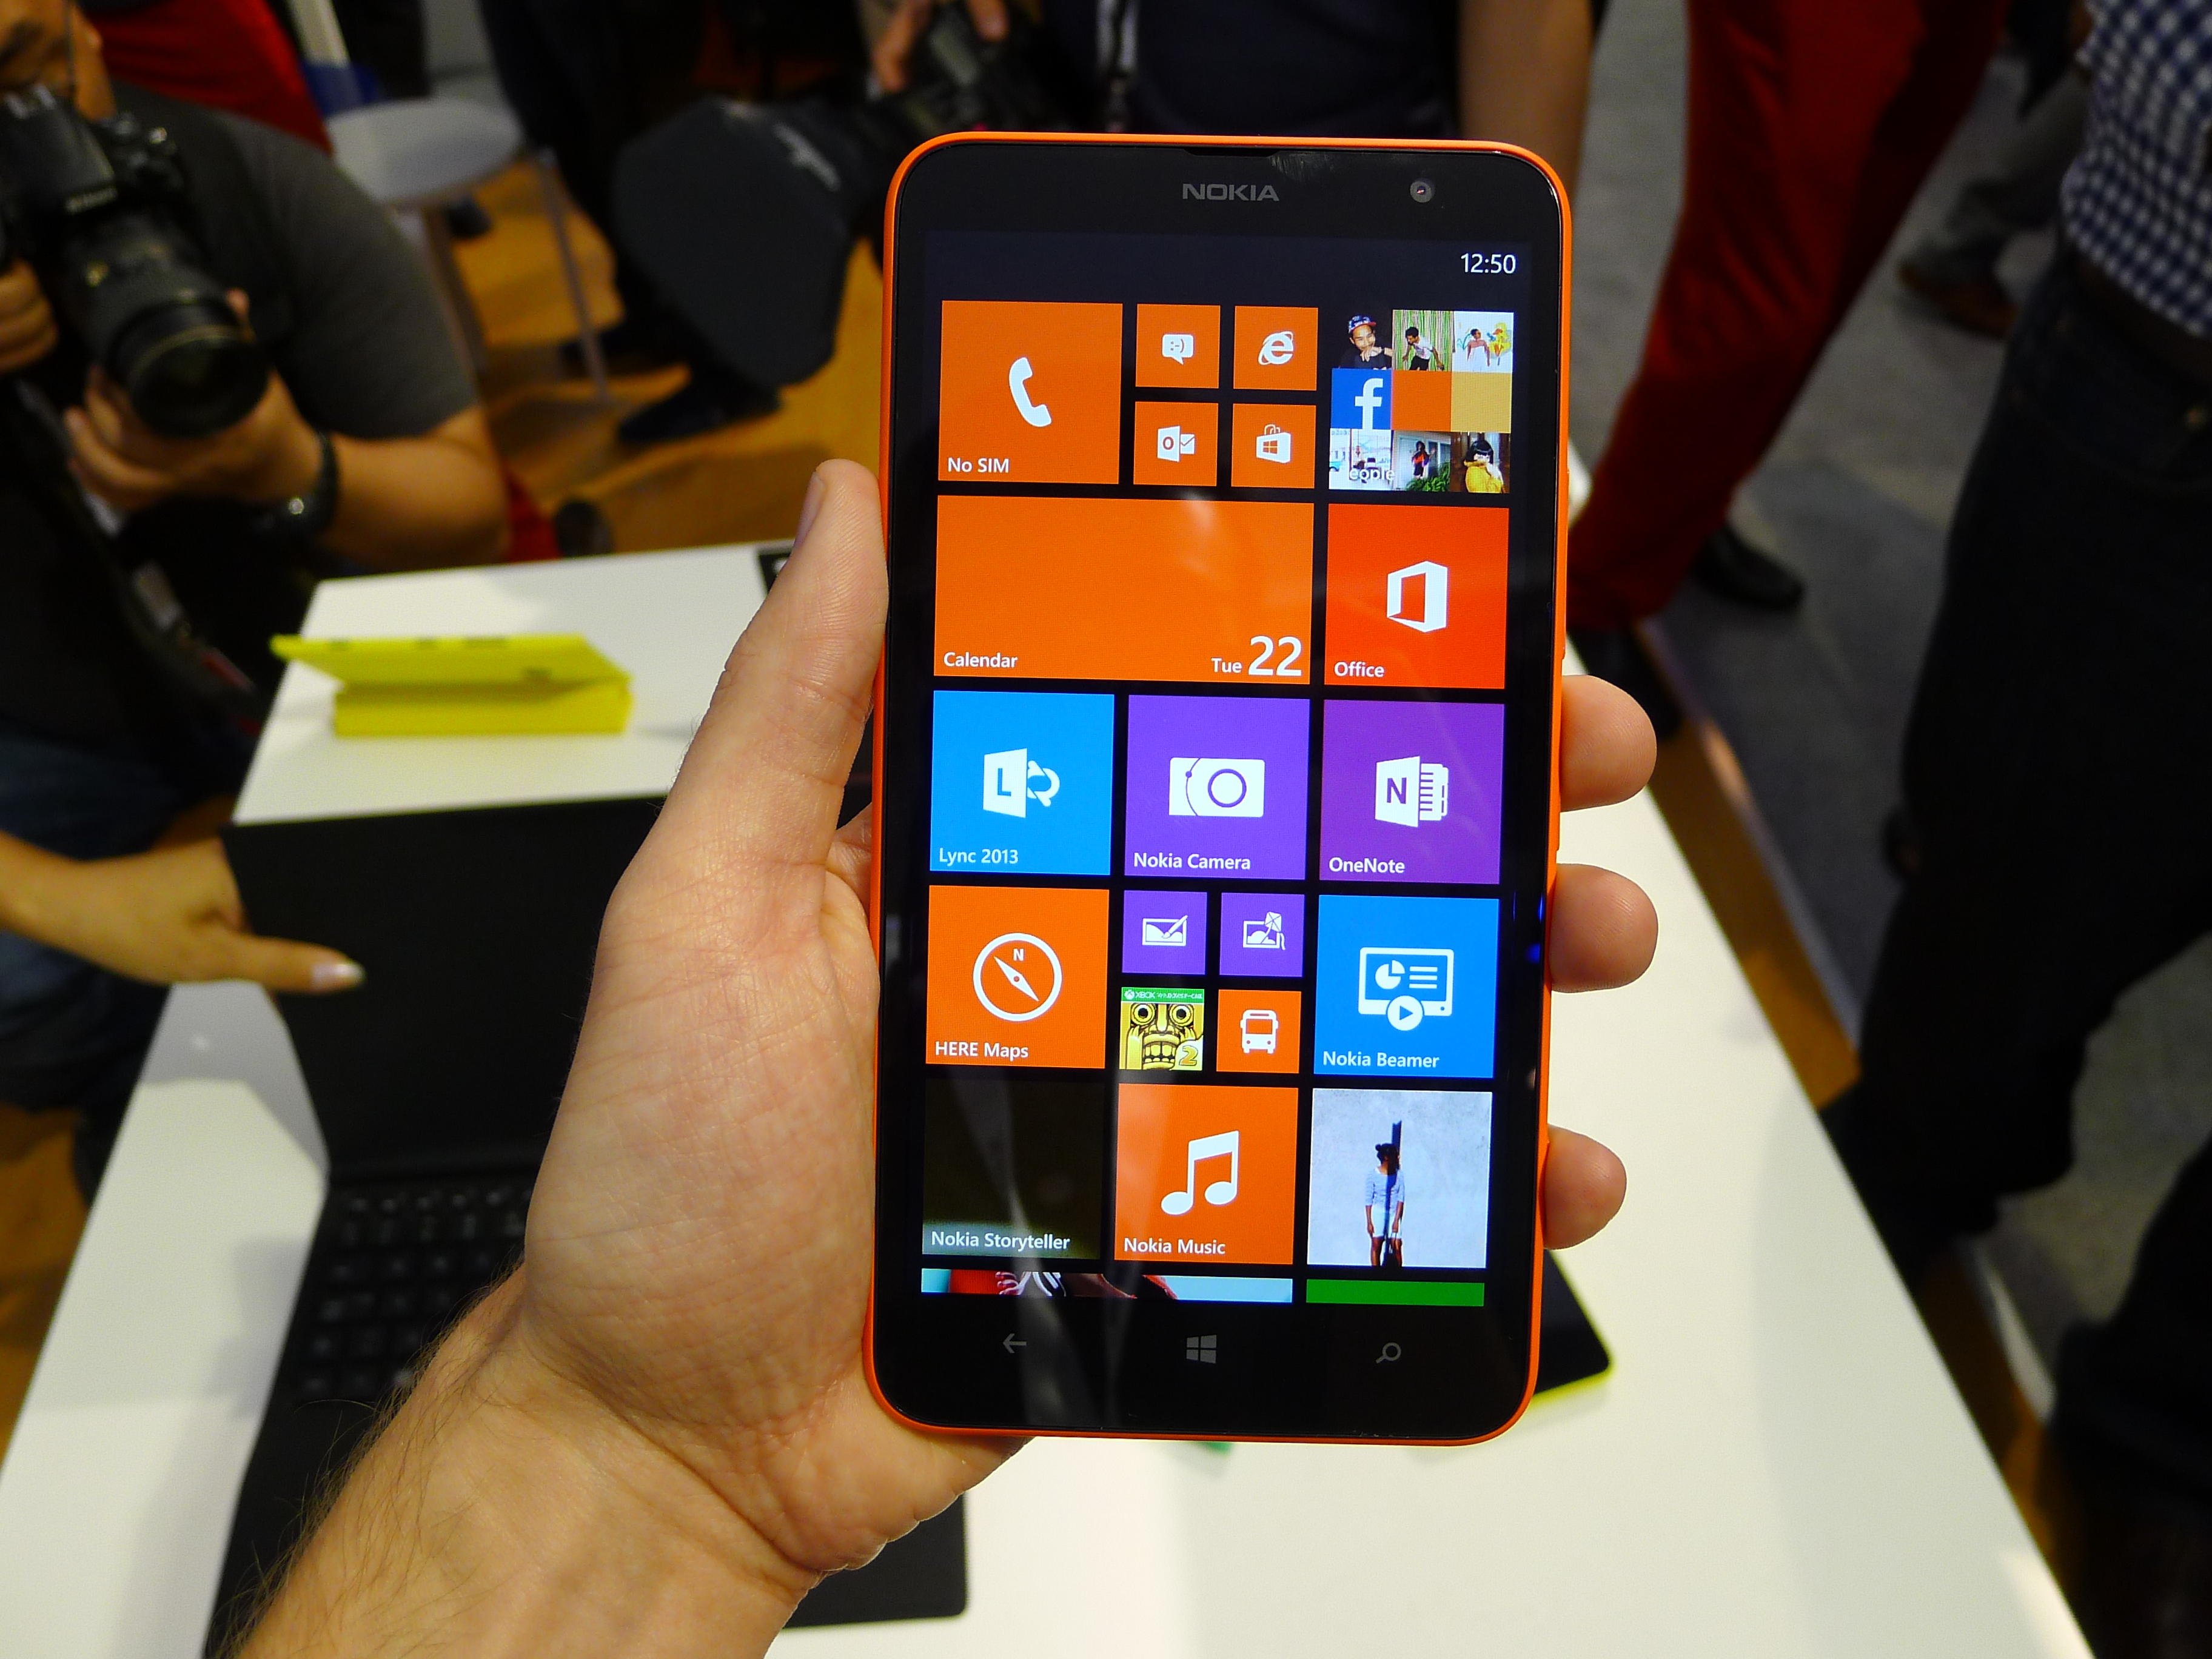 Nokia Lumia 1320 hands-on: How does this 6″, 720p smartphone stack up  against the Lumia 1520?